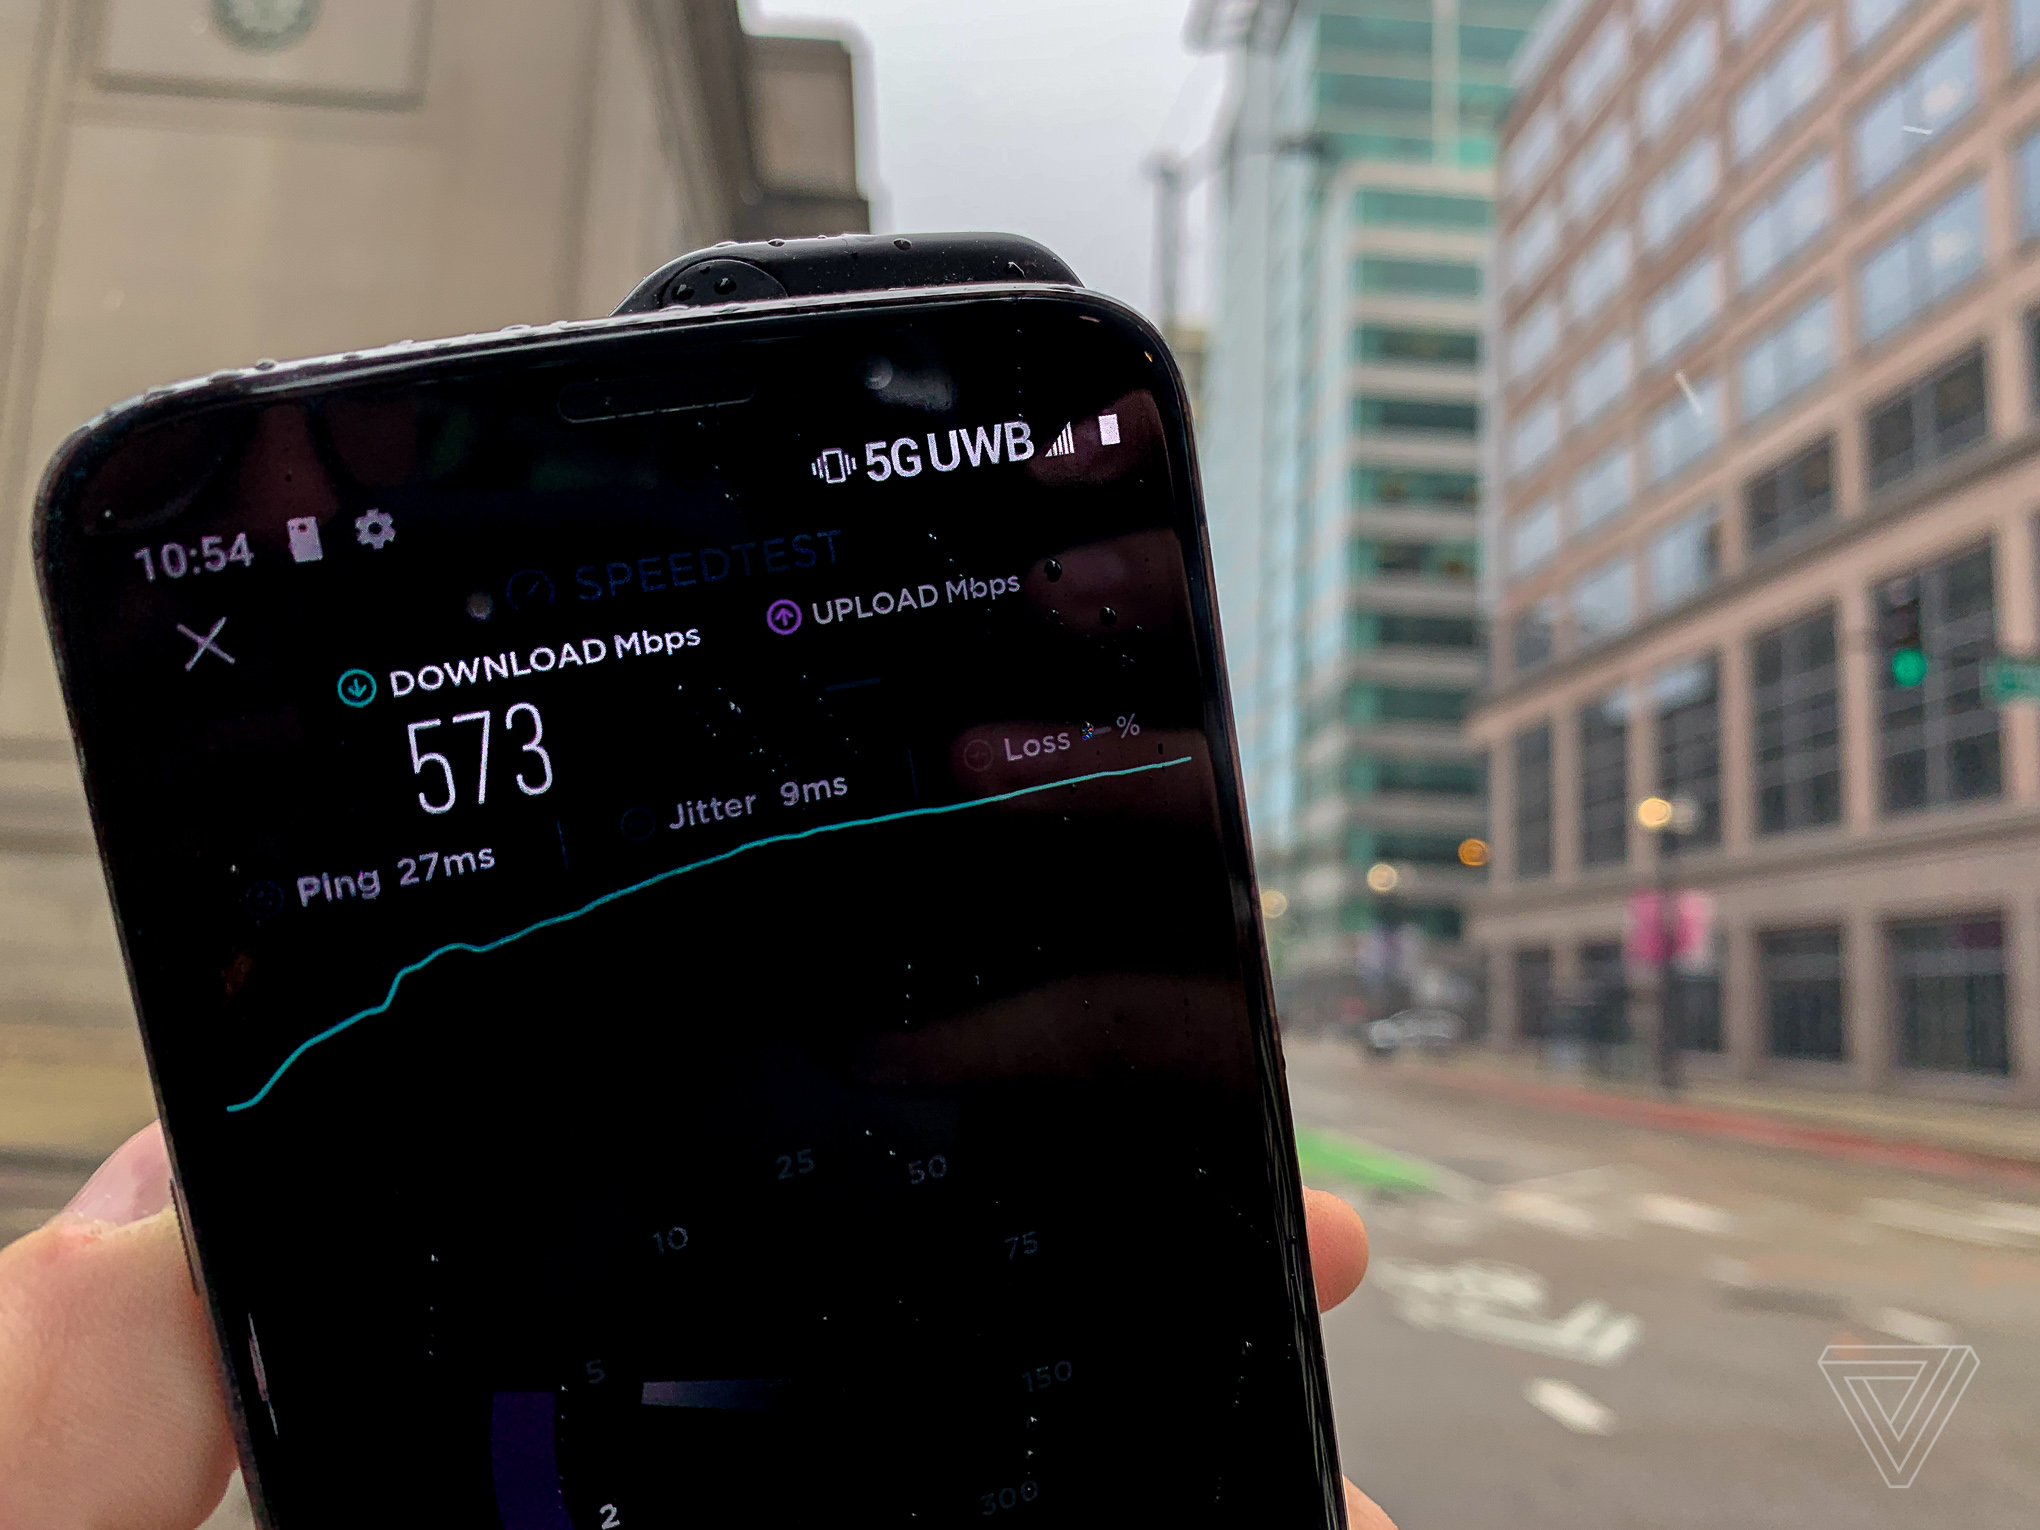 Verizon's 5G network is blazing fast, but it barely exists - The Verge